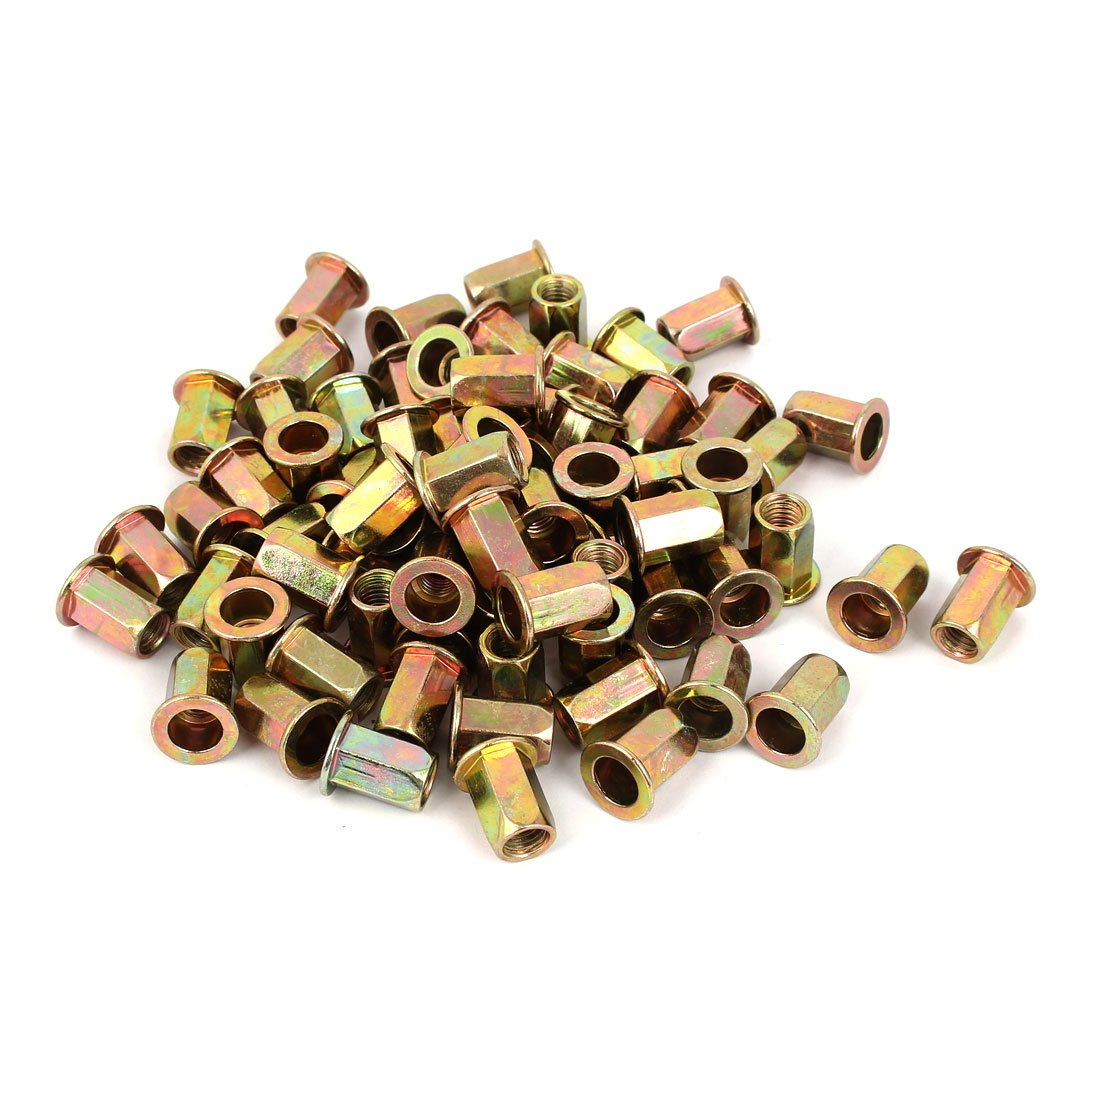 uxcell M8 Flat Head Hexagon Rivet Nut Insert Nutsert Bronze Tone 100pcs